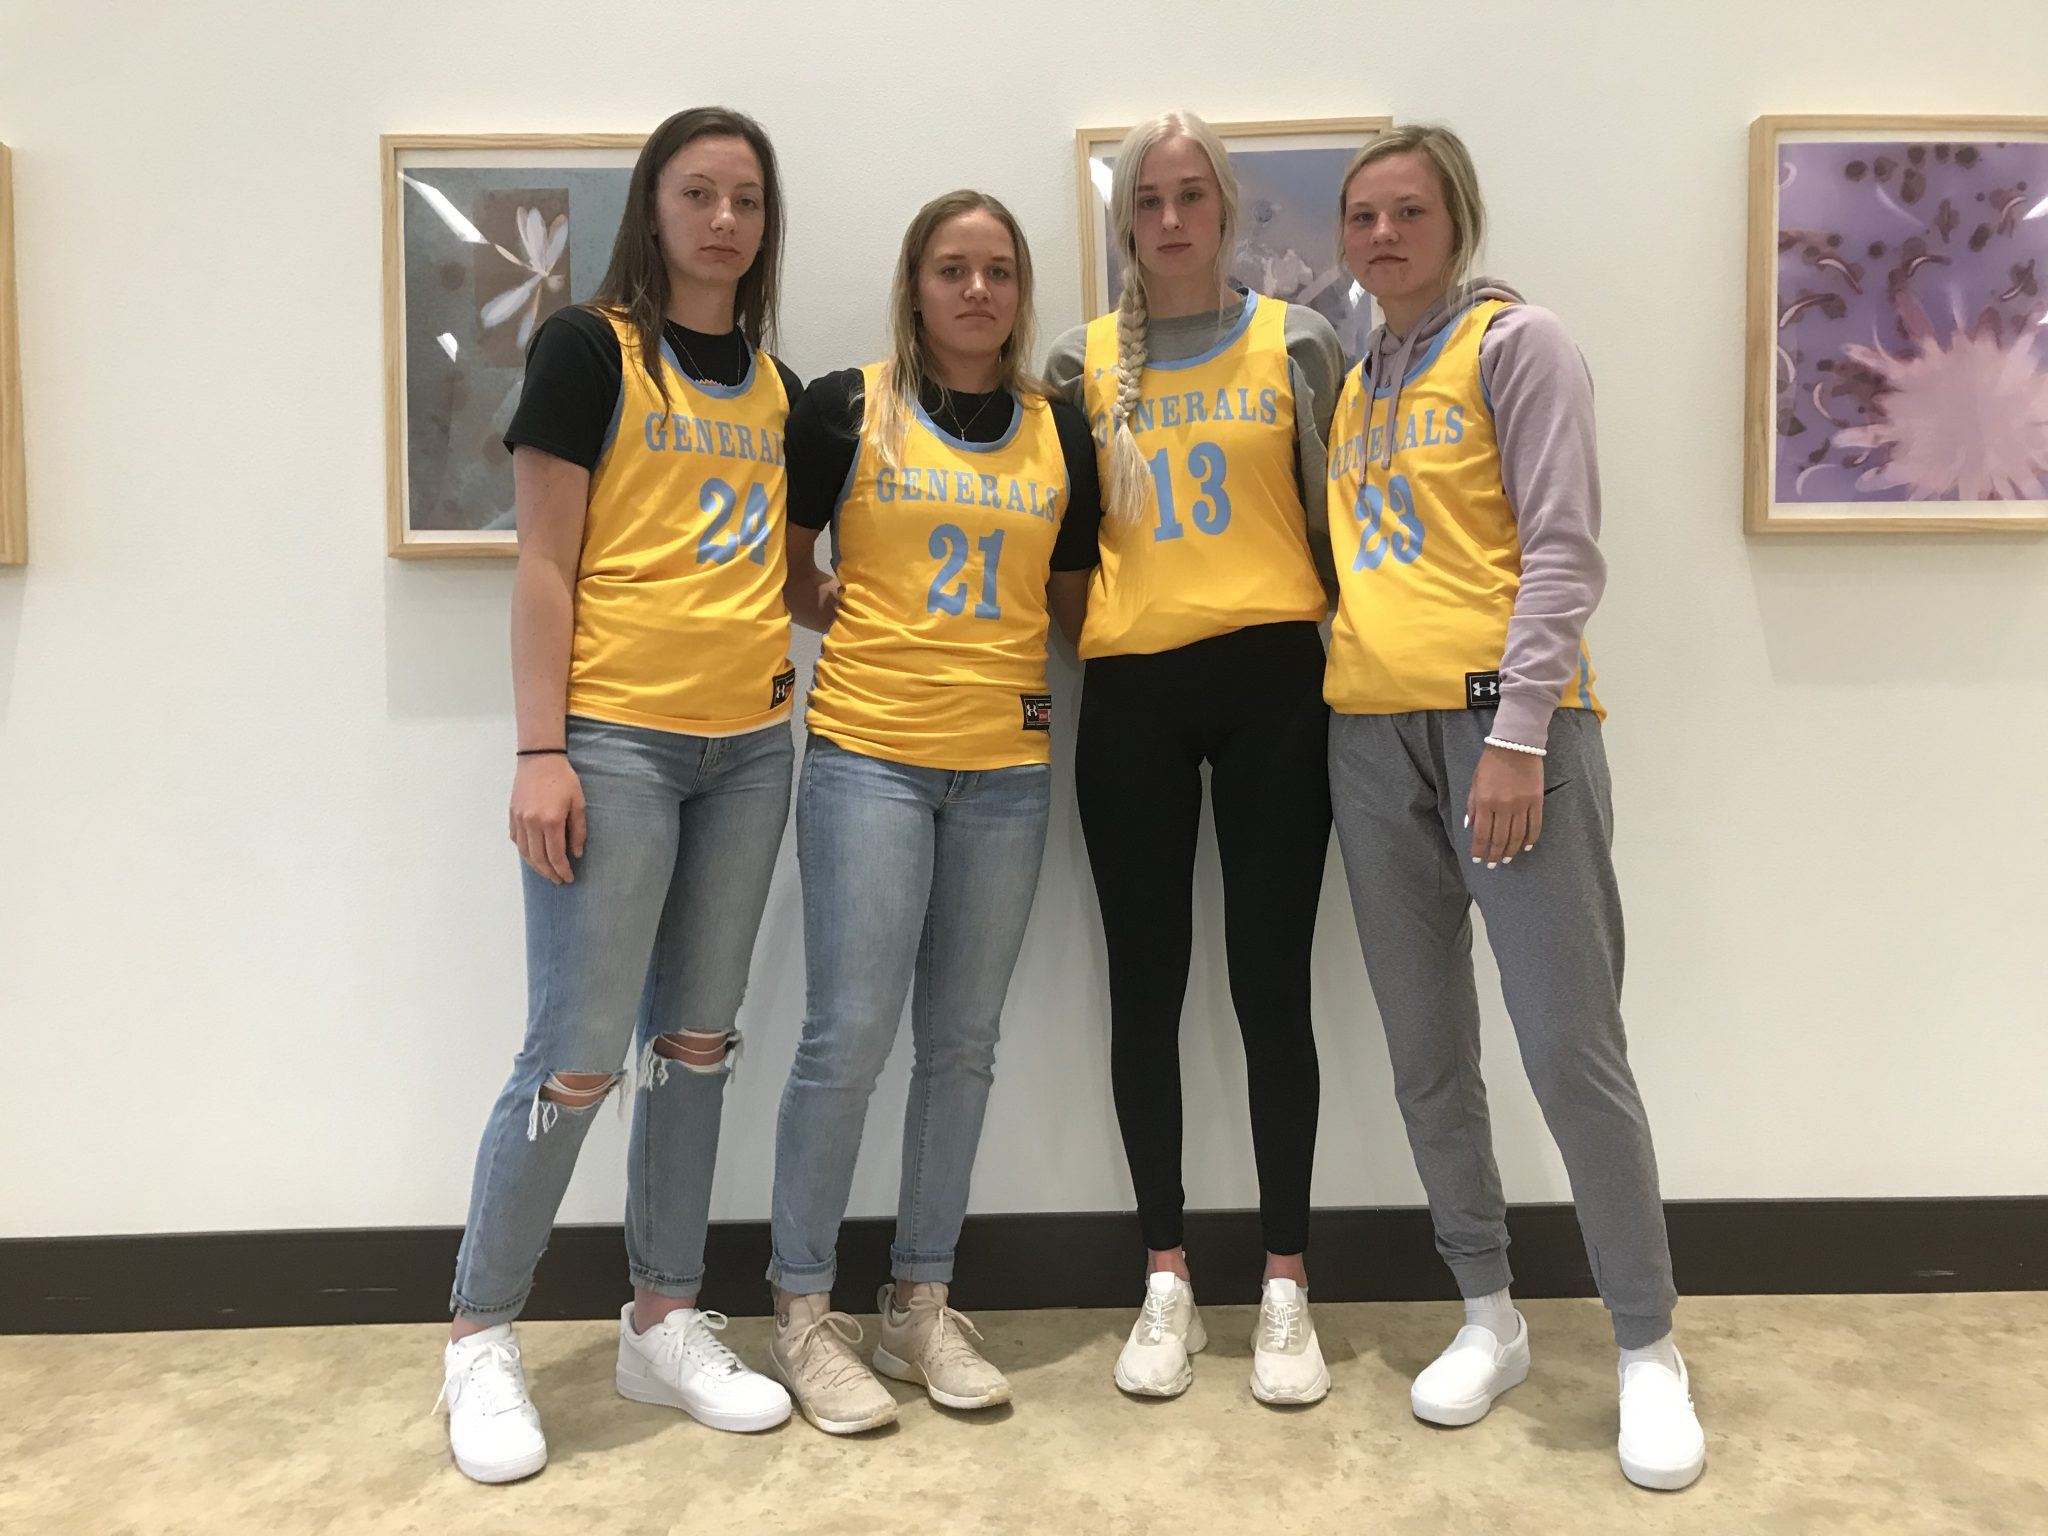 Recently recruited Women Wangers Basketball players prepare for public comment